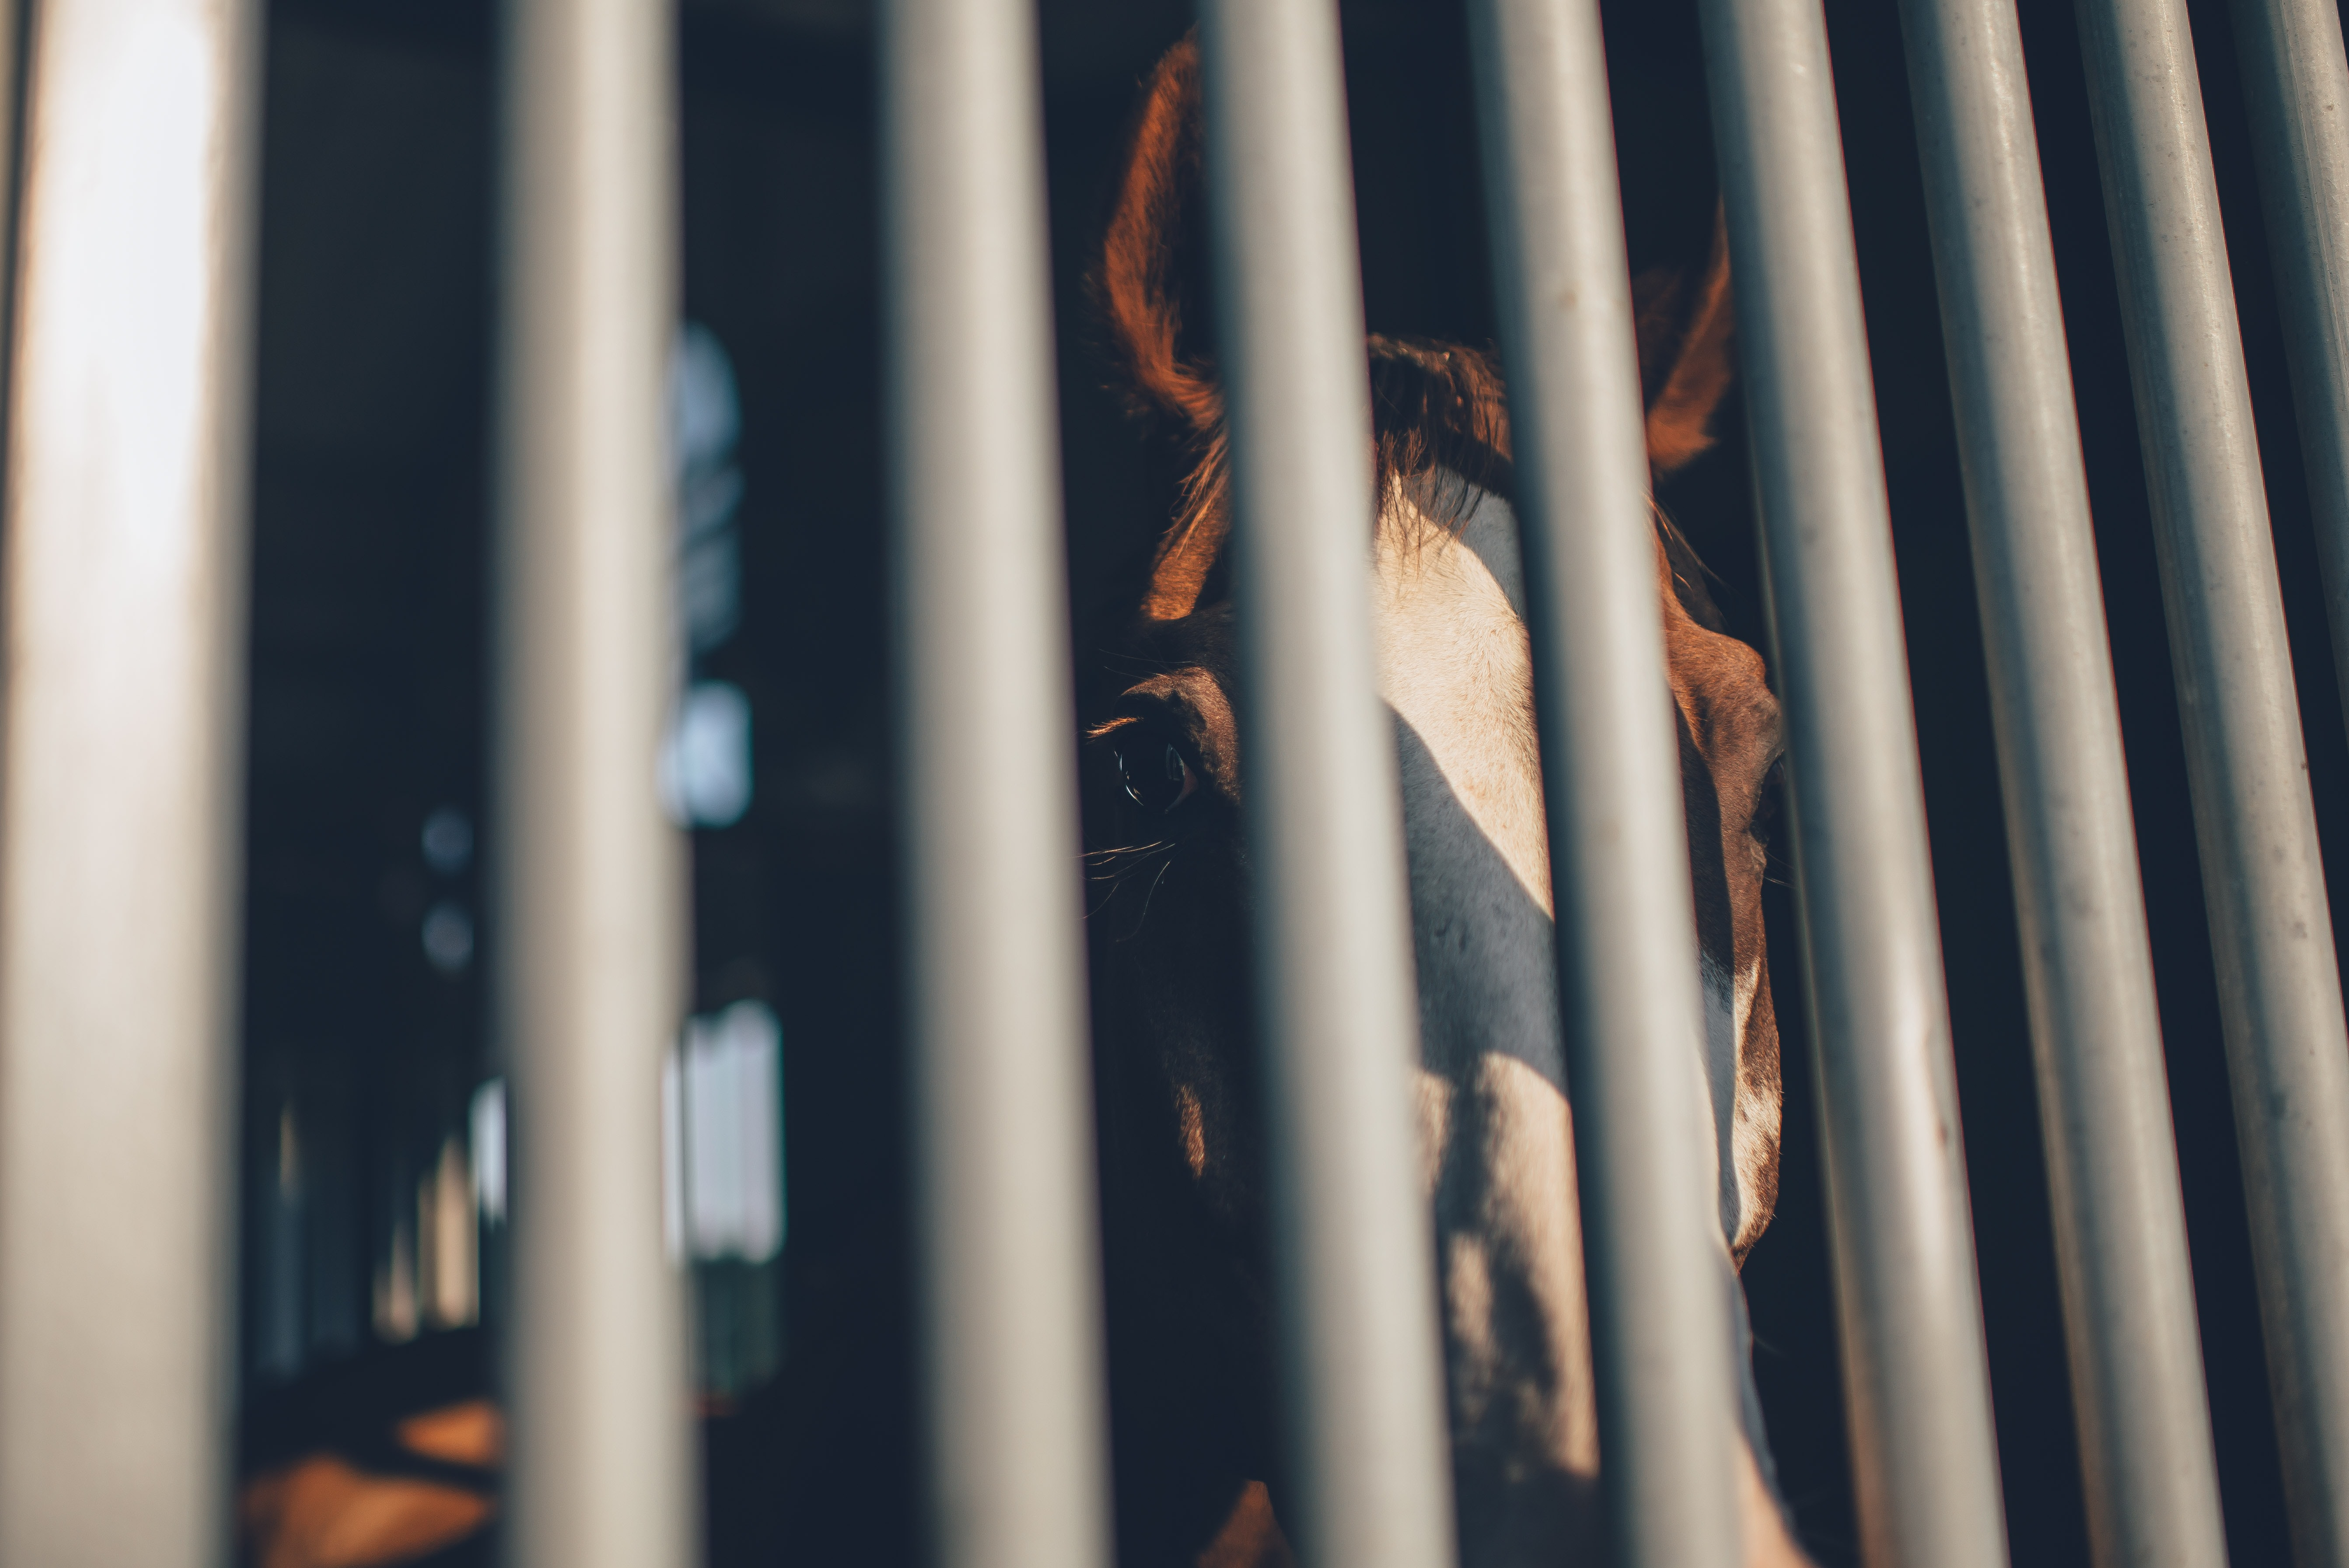 brown horse behind grey bars